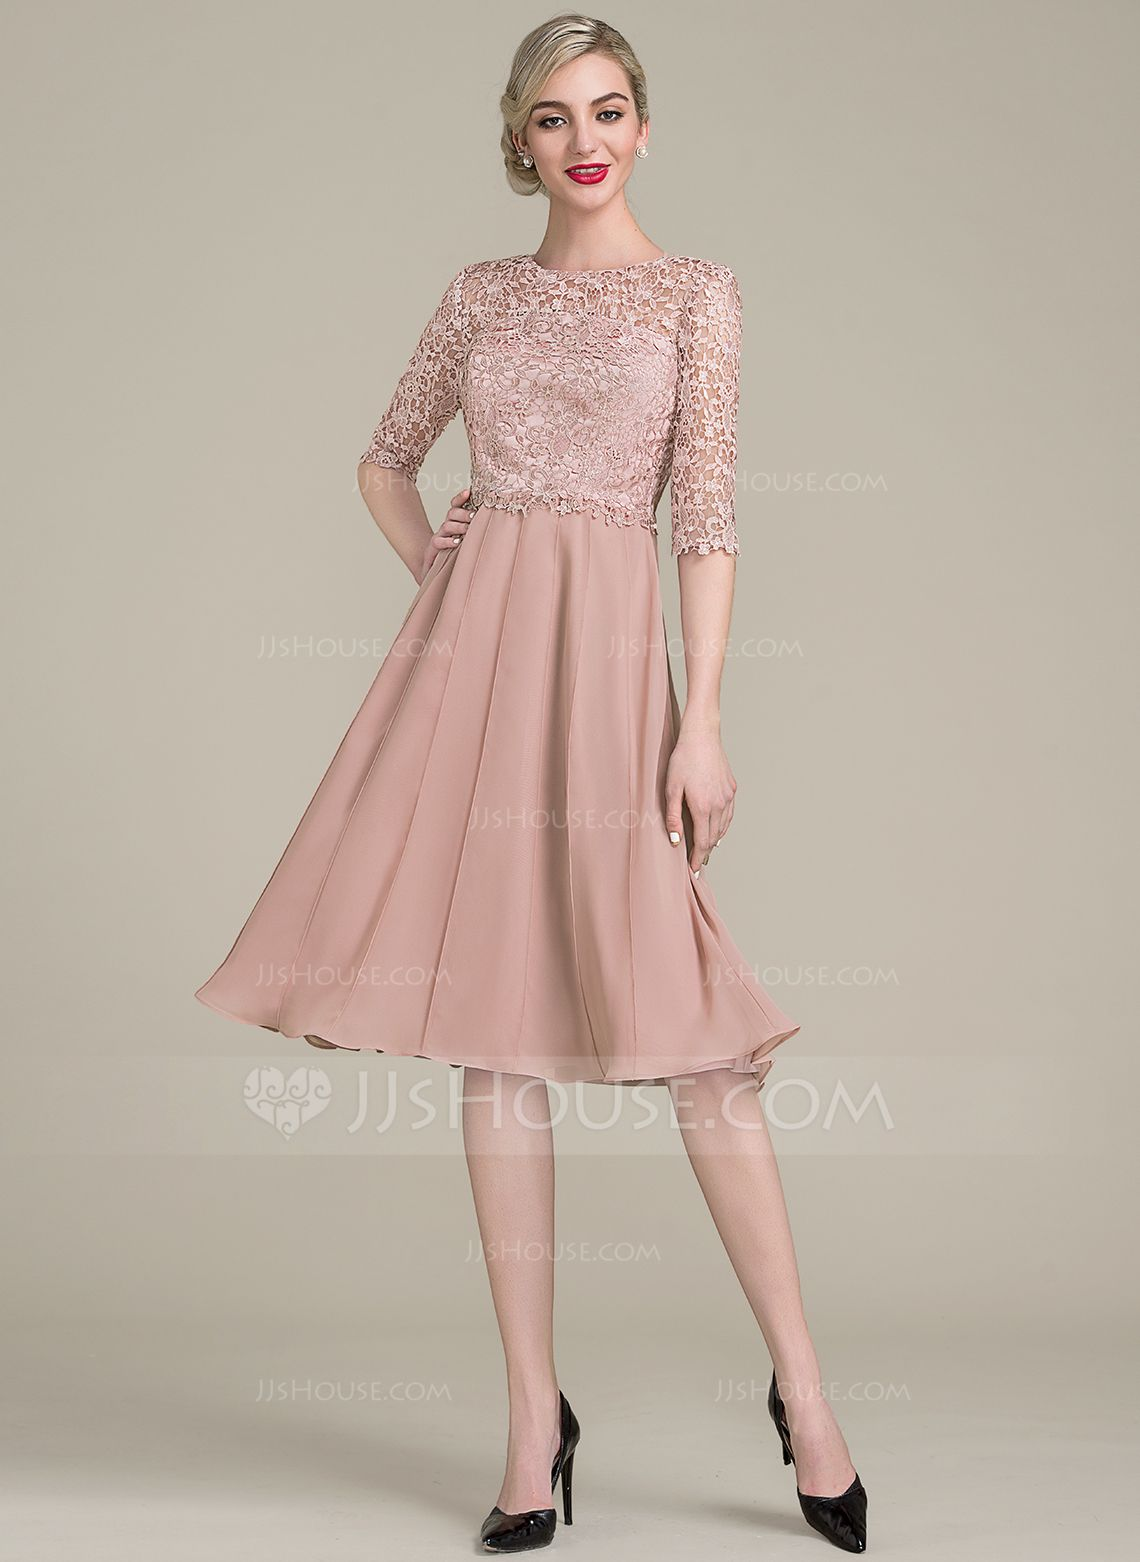 Long dresses for wedding party  ALinePrincess Scoop Neck KneeLength Chiffon Lace Mother of the